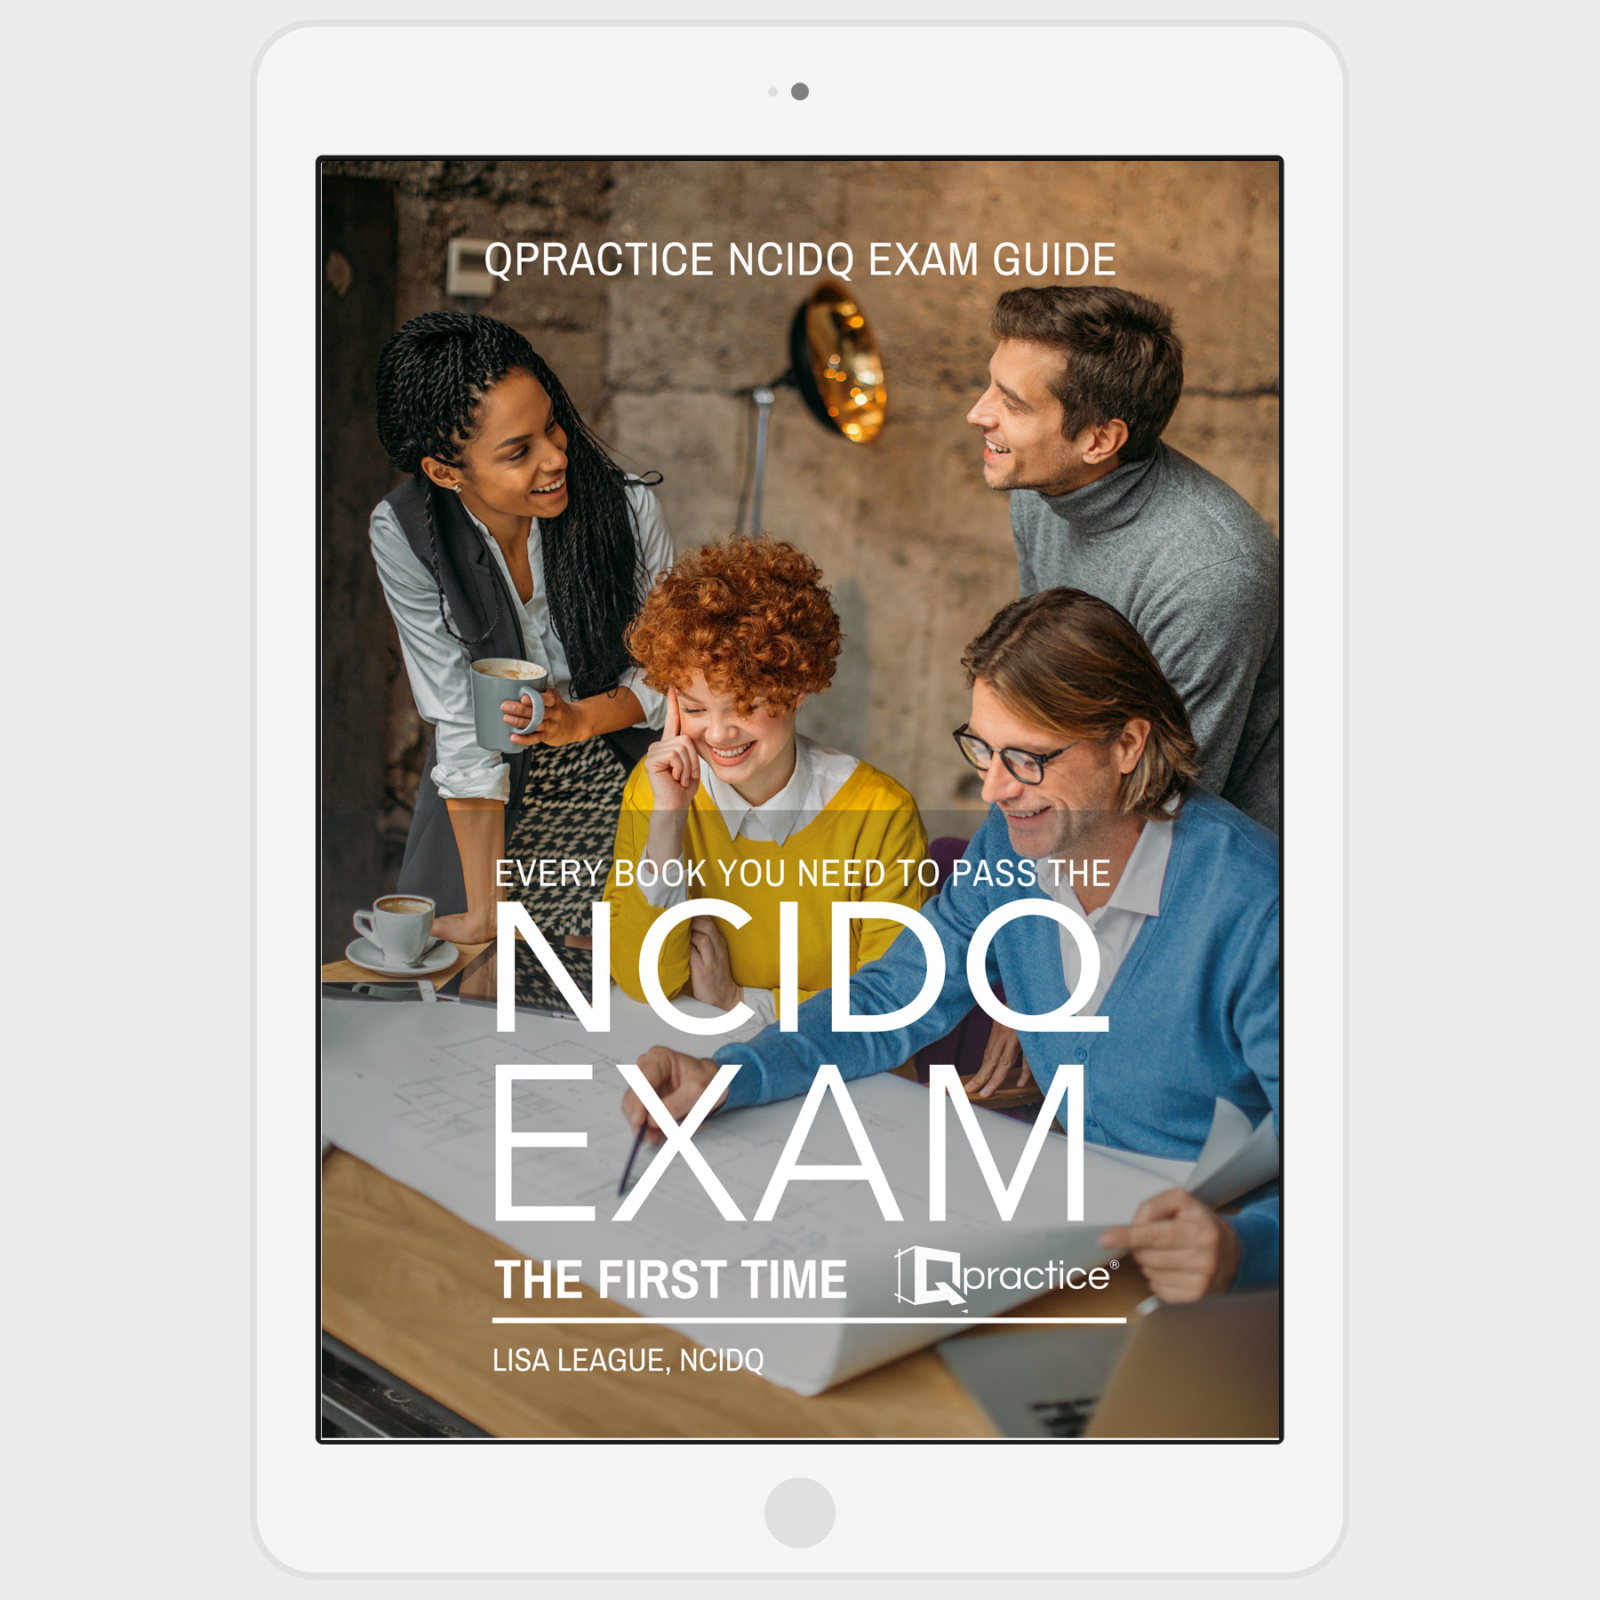 Qpractice ncidq exam guide ebook 2nd edition qpractice qpractice ncidq exam guide ebook fandeluxe Gallery